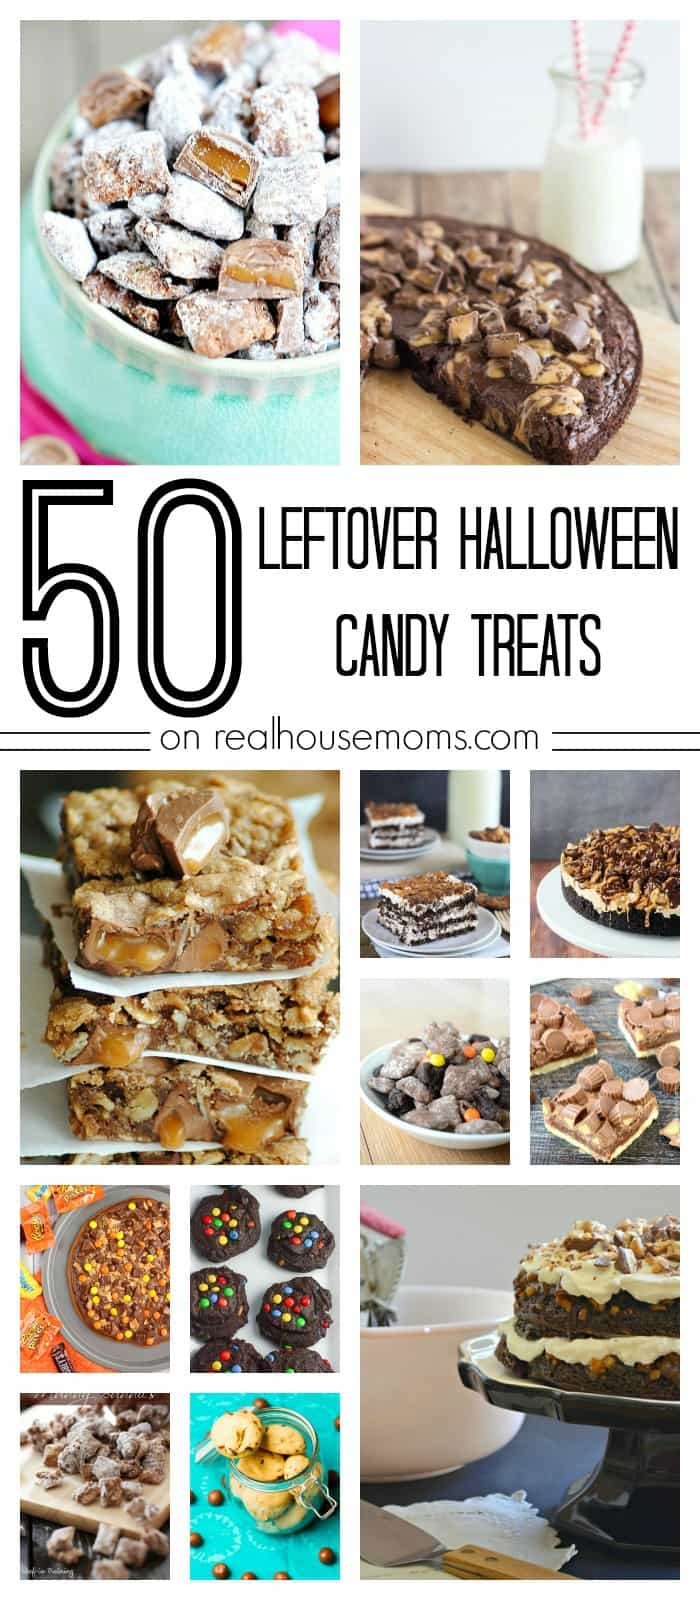 50 leftover halloween candy treats on real housemoms